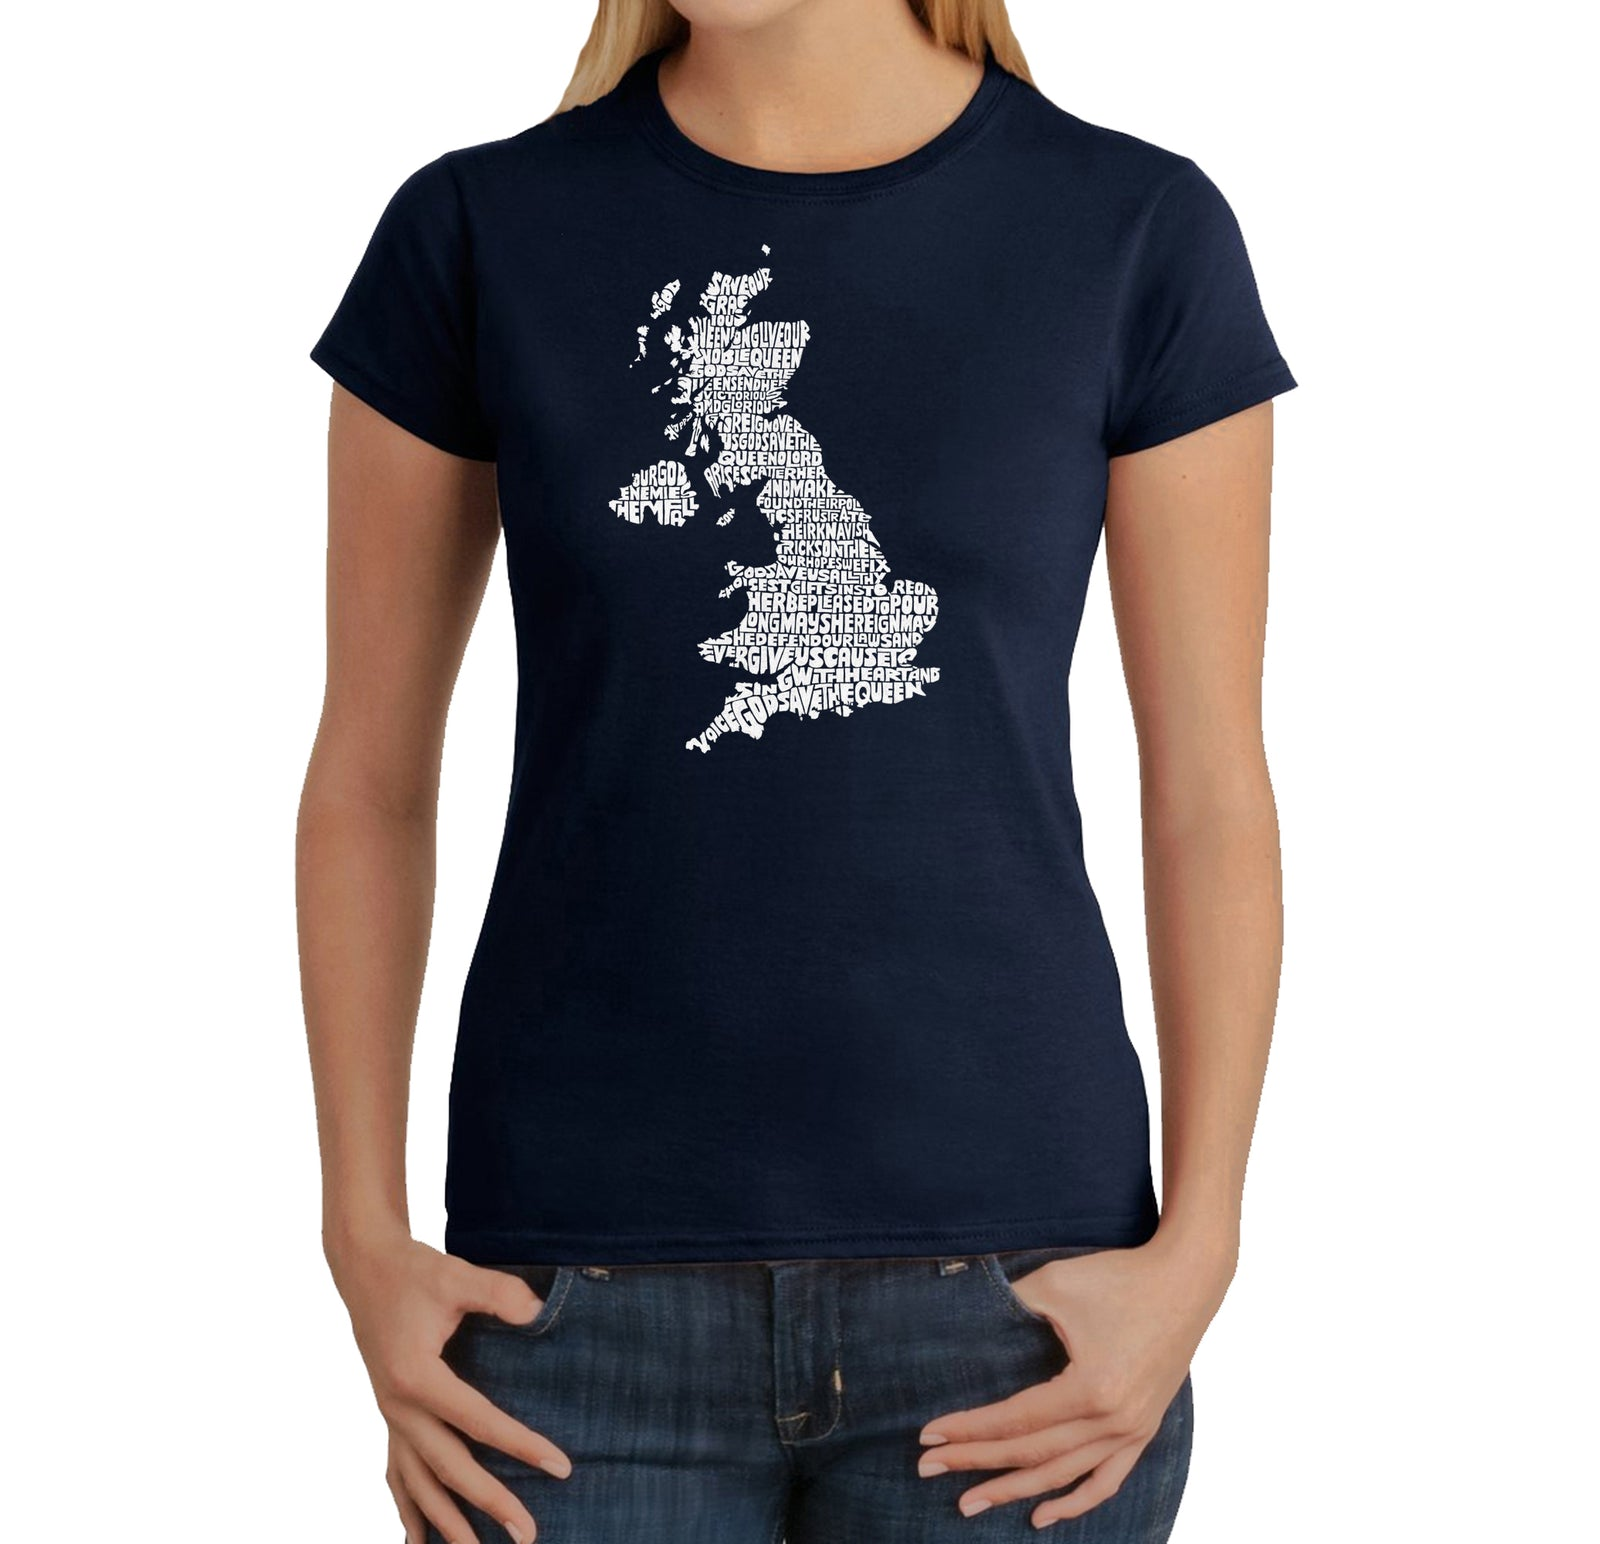 Women's T-Shirt - GOD SAVE THE QUEEN